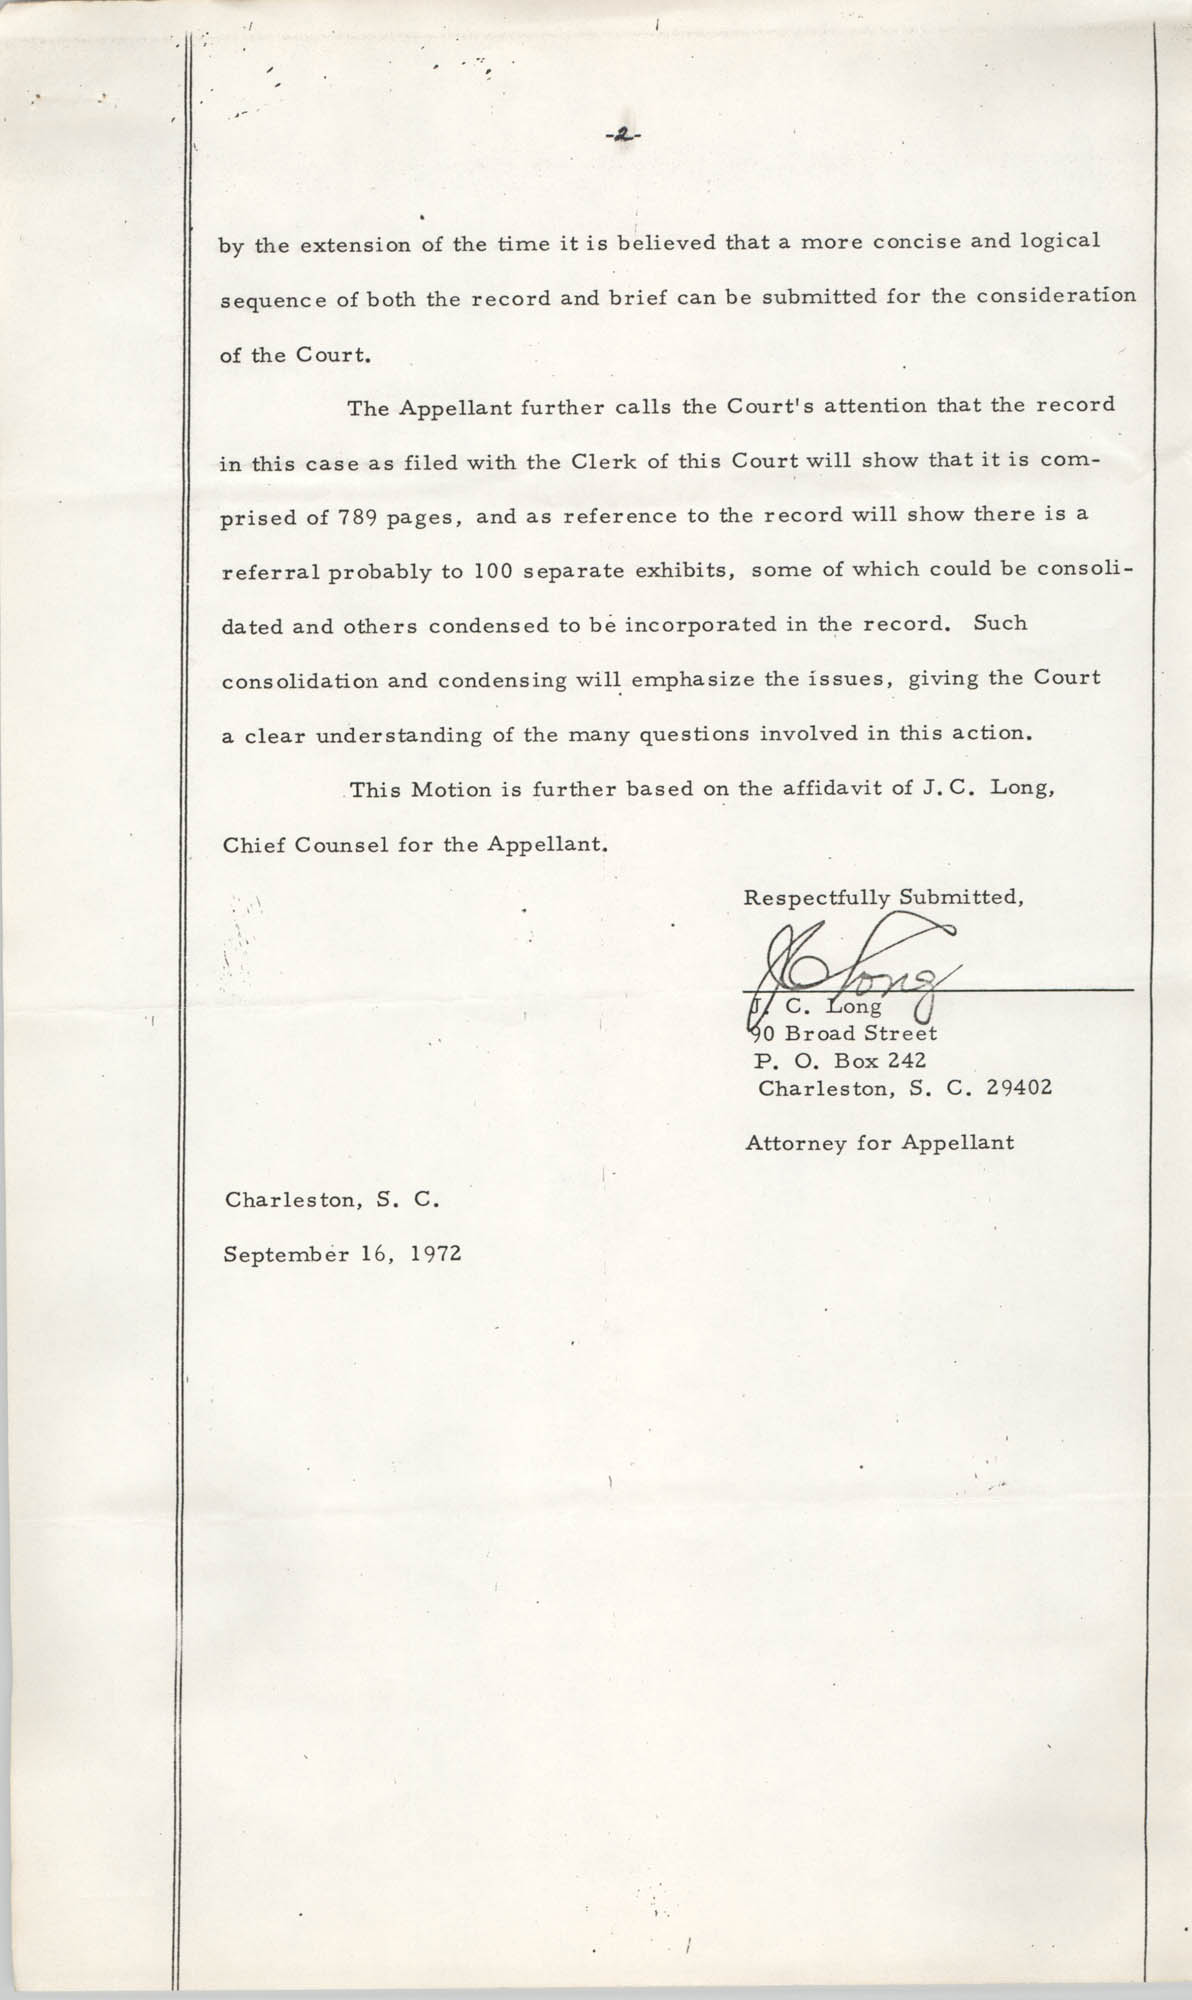 National Board of the Y.W.C.A. of the U.S.A. vs. Y.W.C.A. of Charleston South Carolina, No. 72-1062, Petition for Extension, Page 2